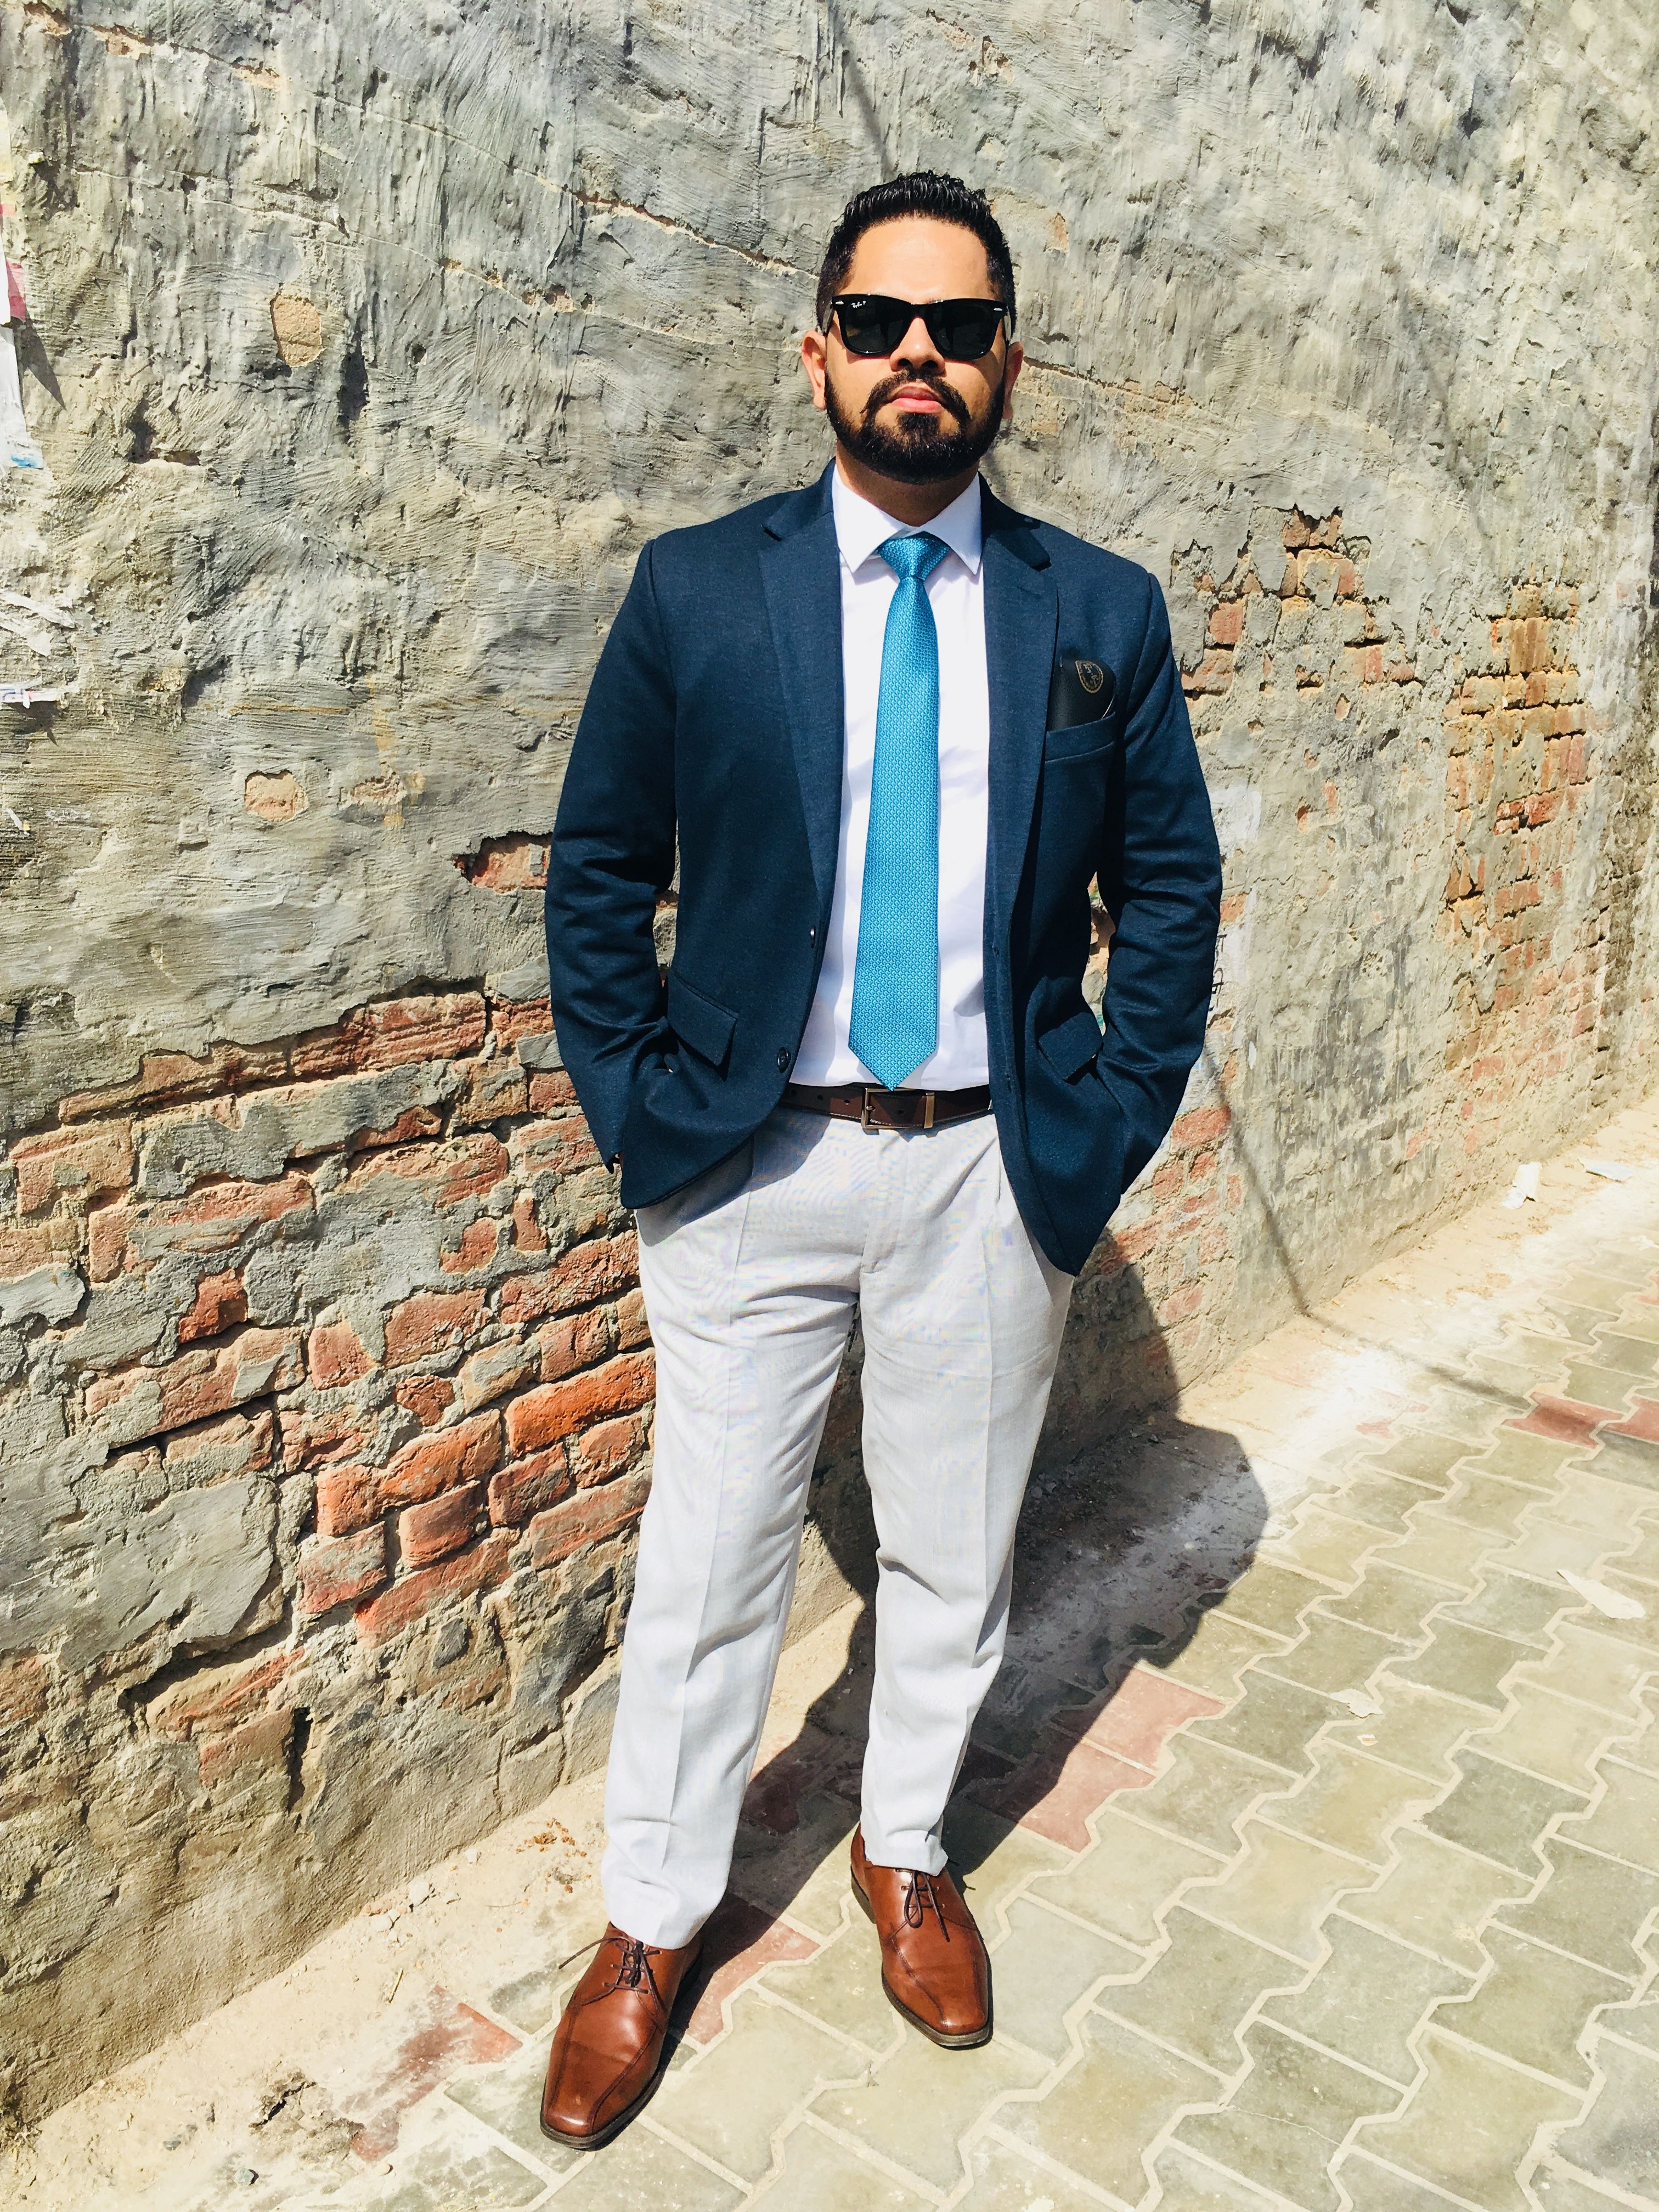 Navy Blazer with Light Gray Pant Outfit Mens Style | Grey